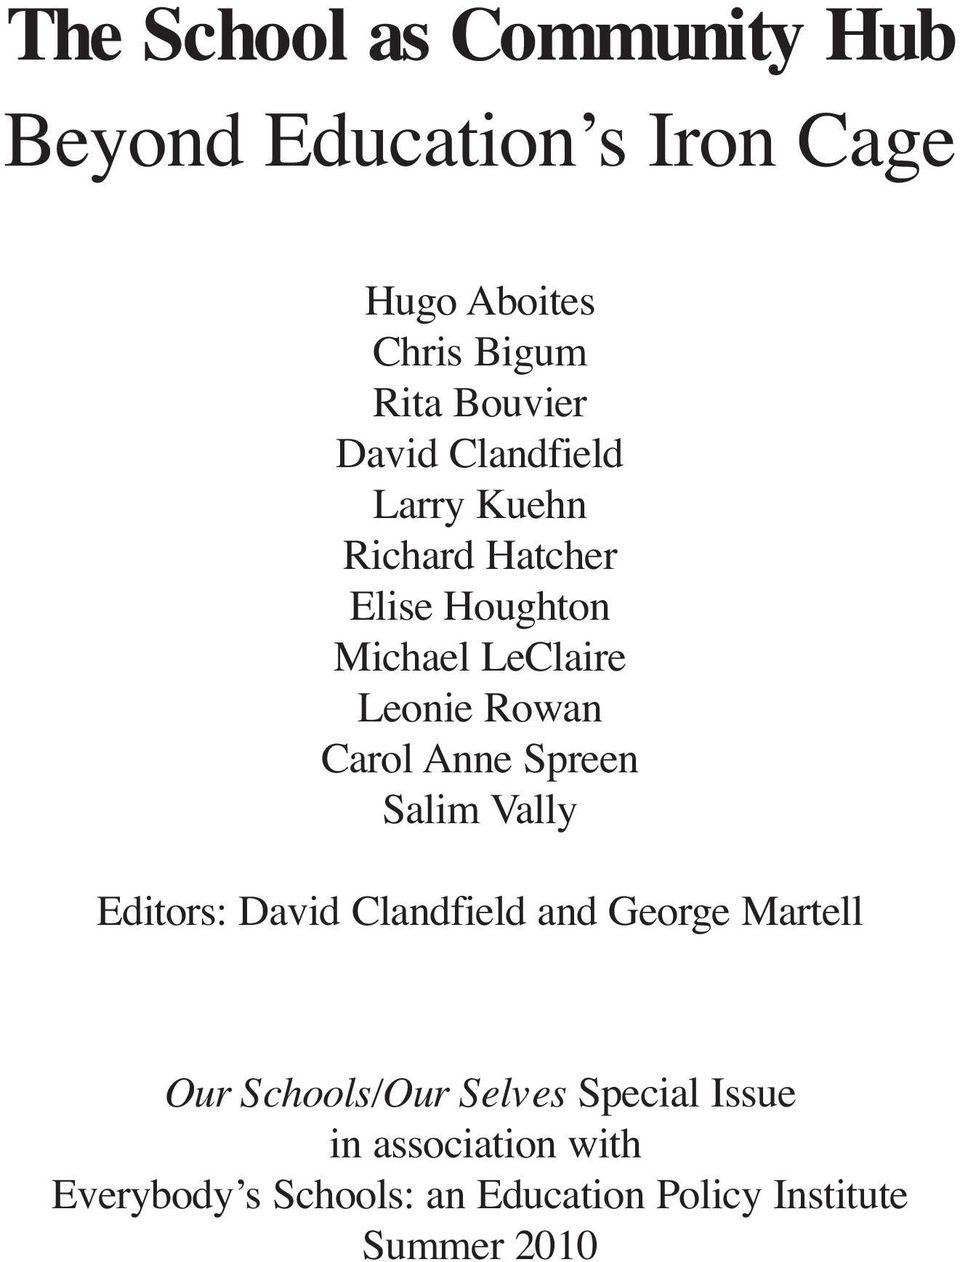 Carol Anne Spreen Salim Vally Editors: David Clandfield and George Martell Our Schools/Our